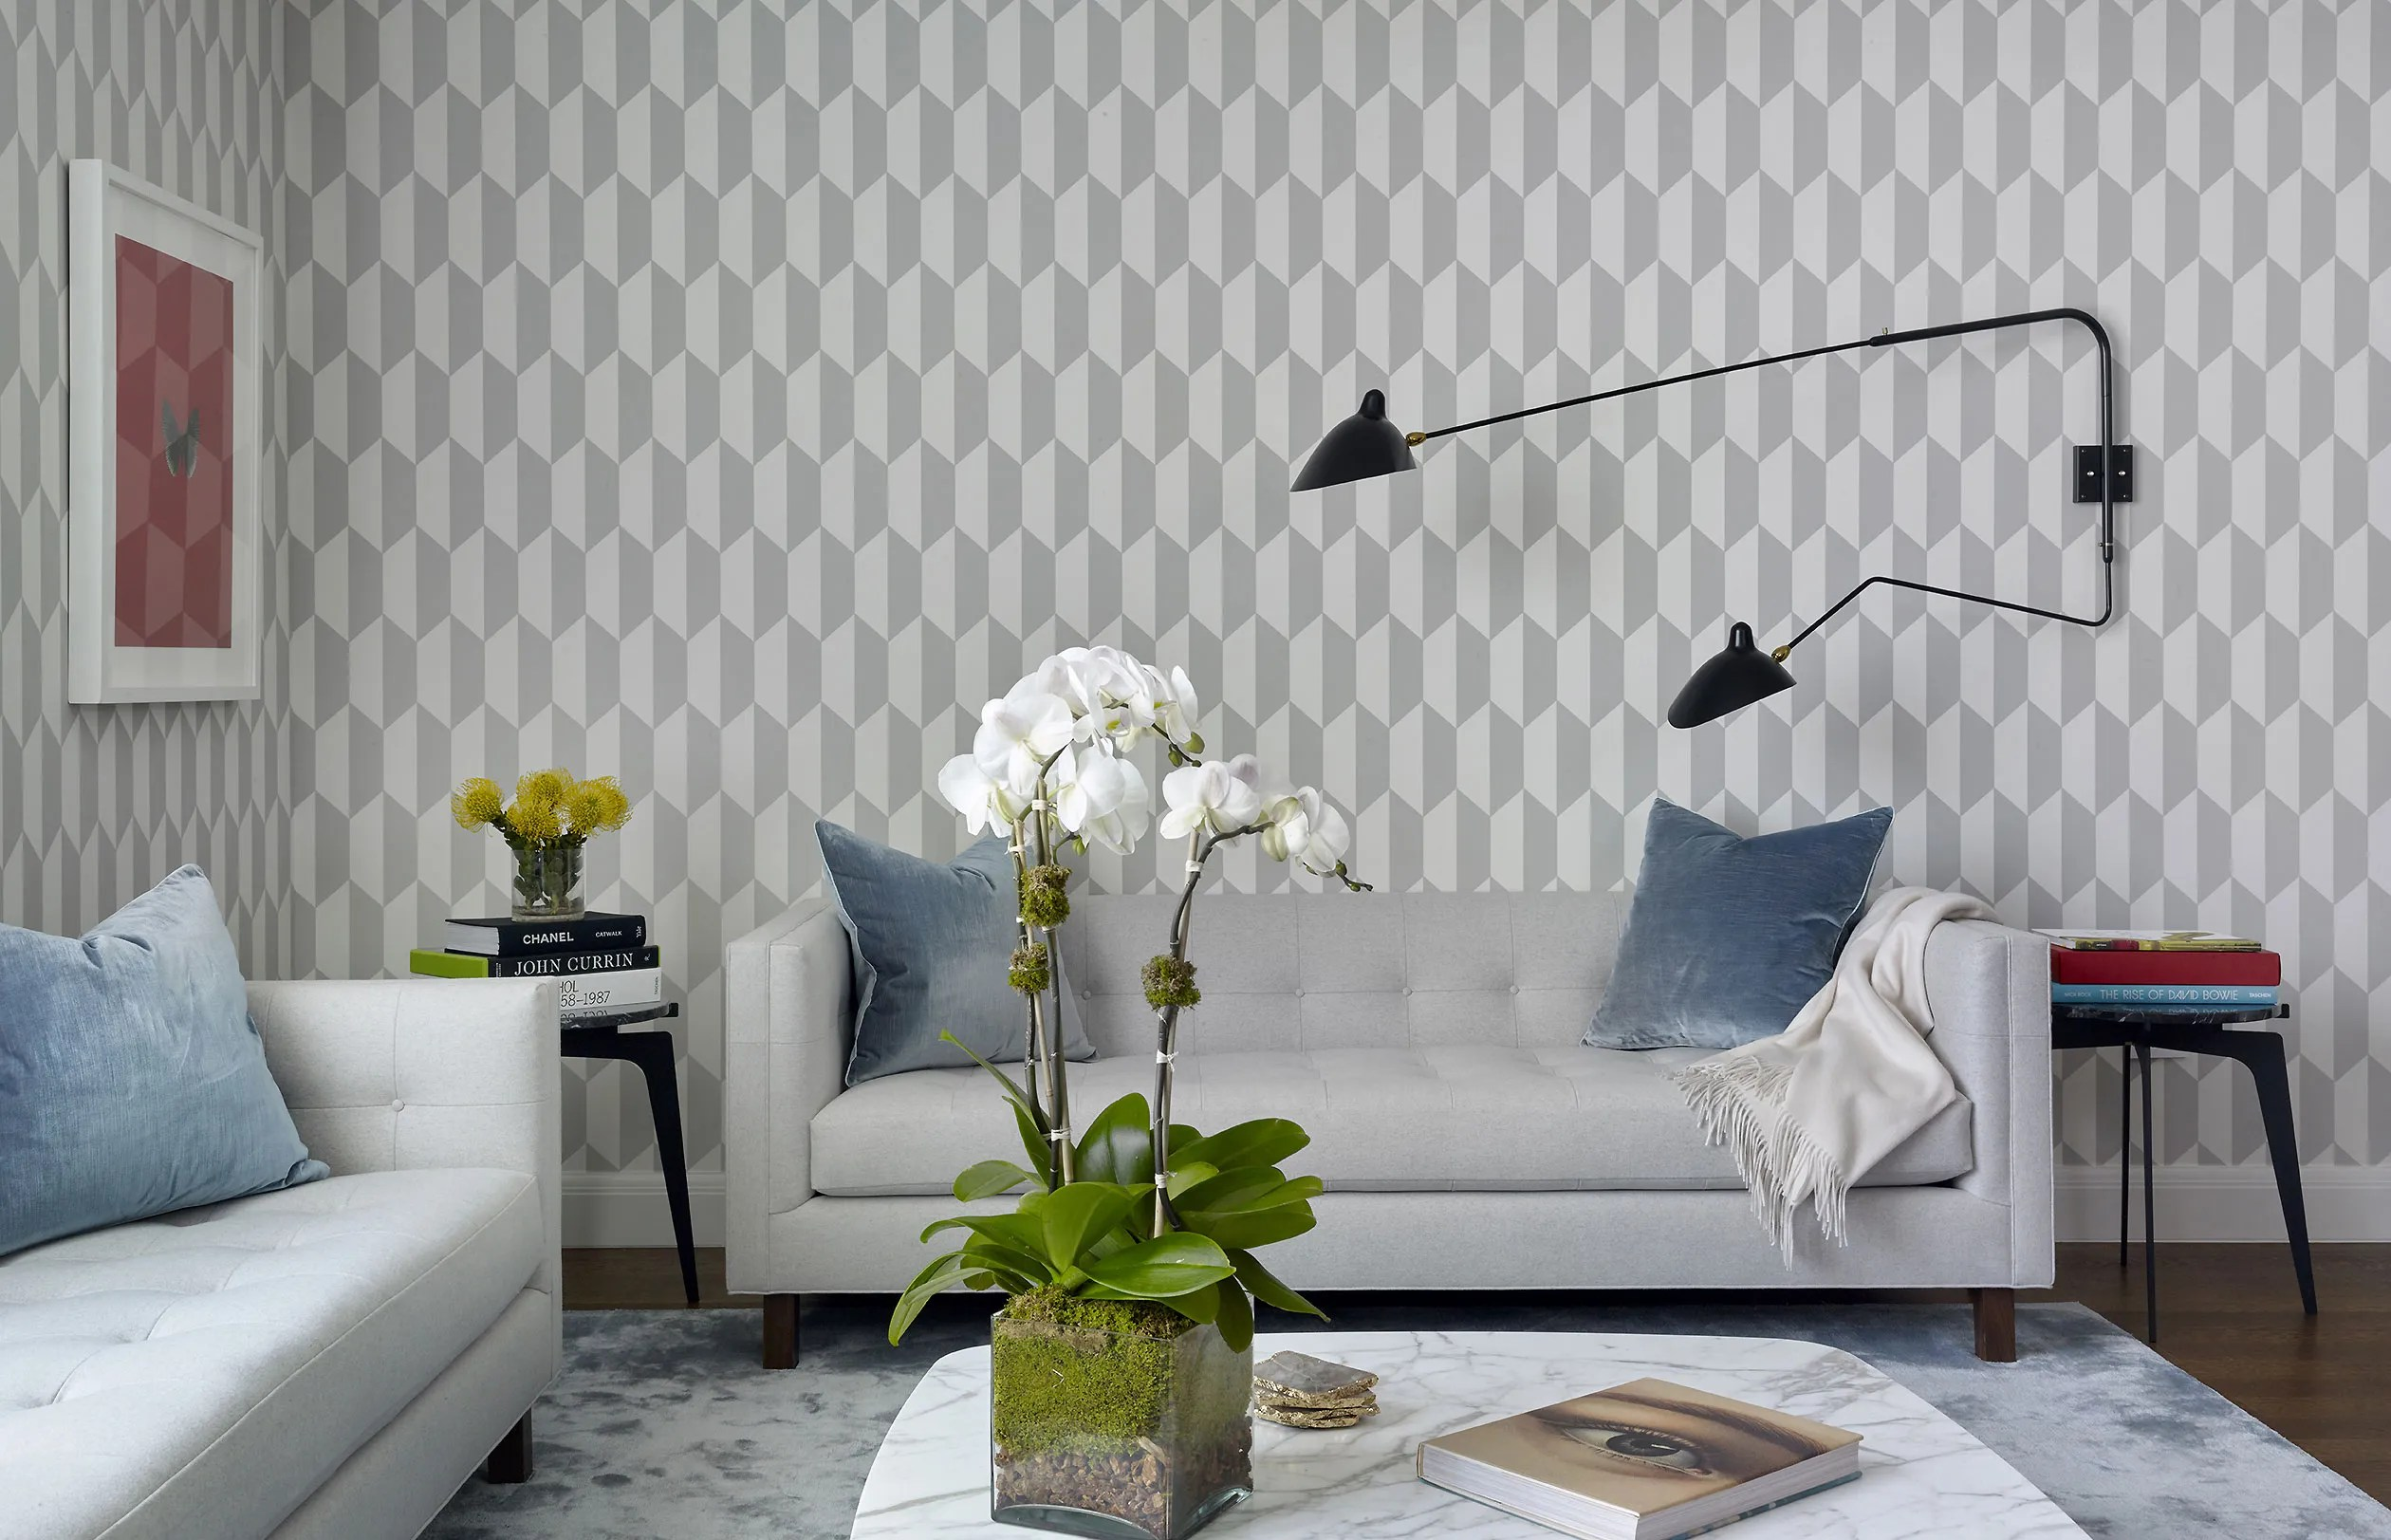 Fall In Love Again Wallpapers This Manhattan Apartment By Paris Forino Will Make You